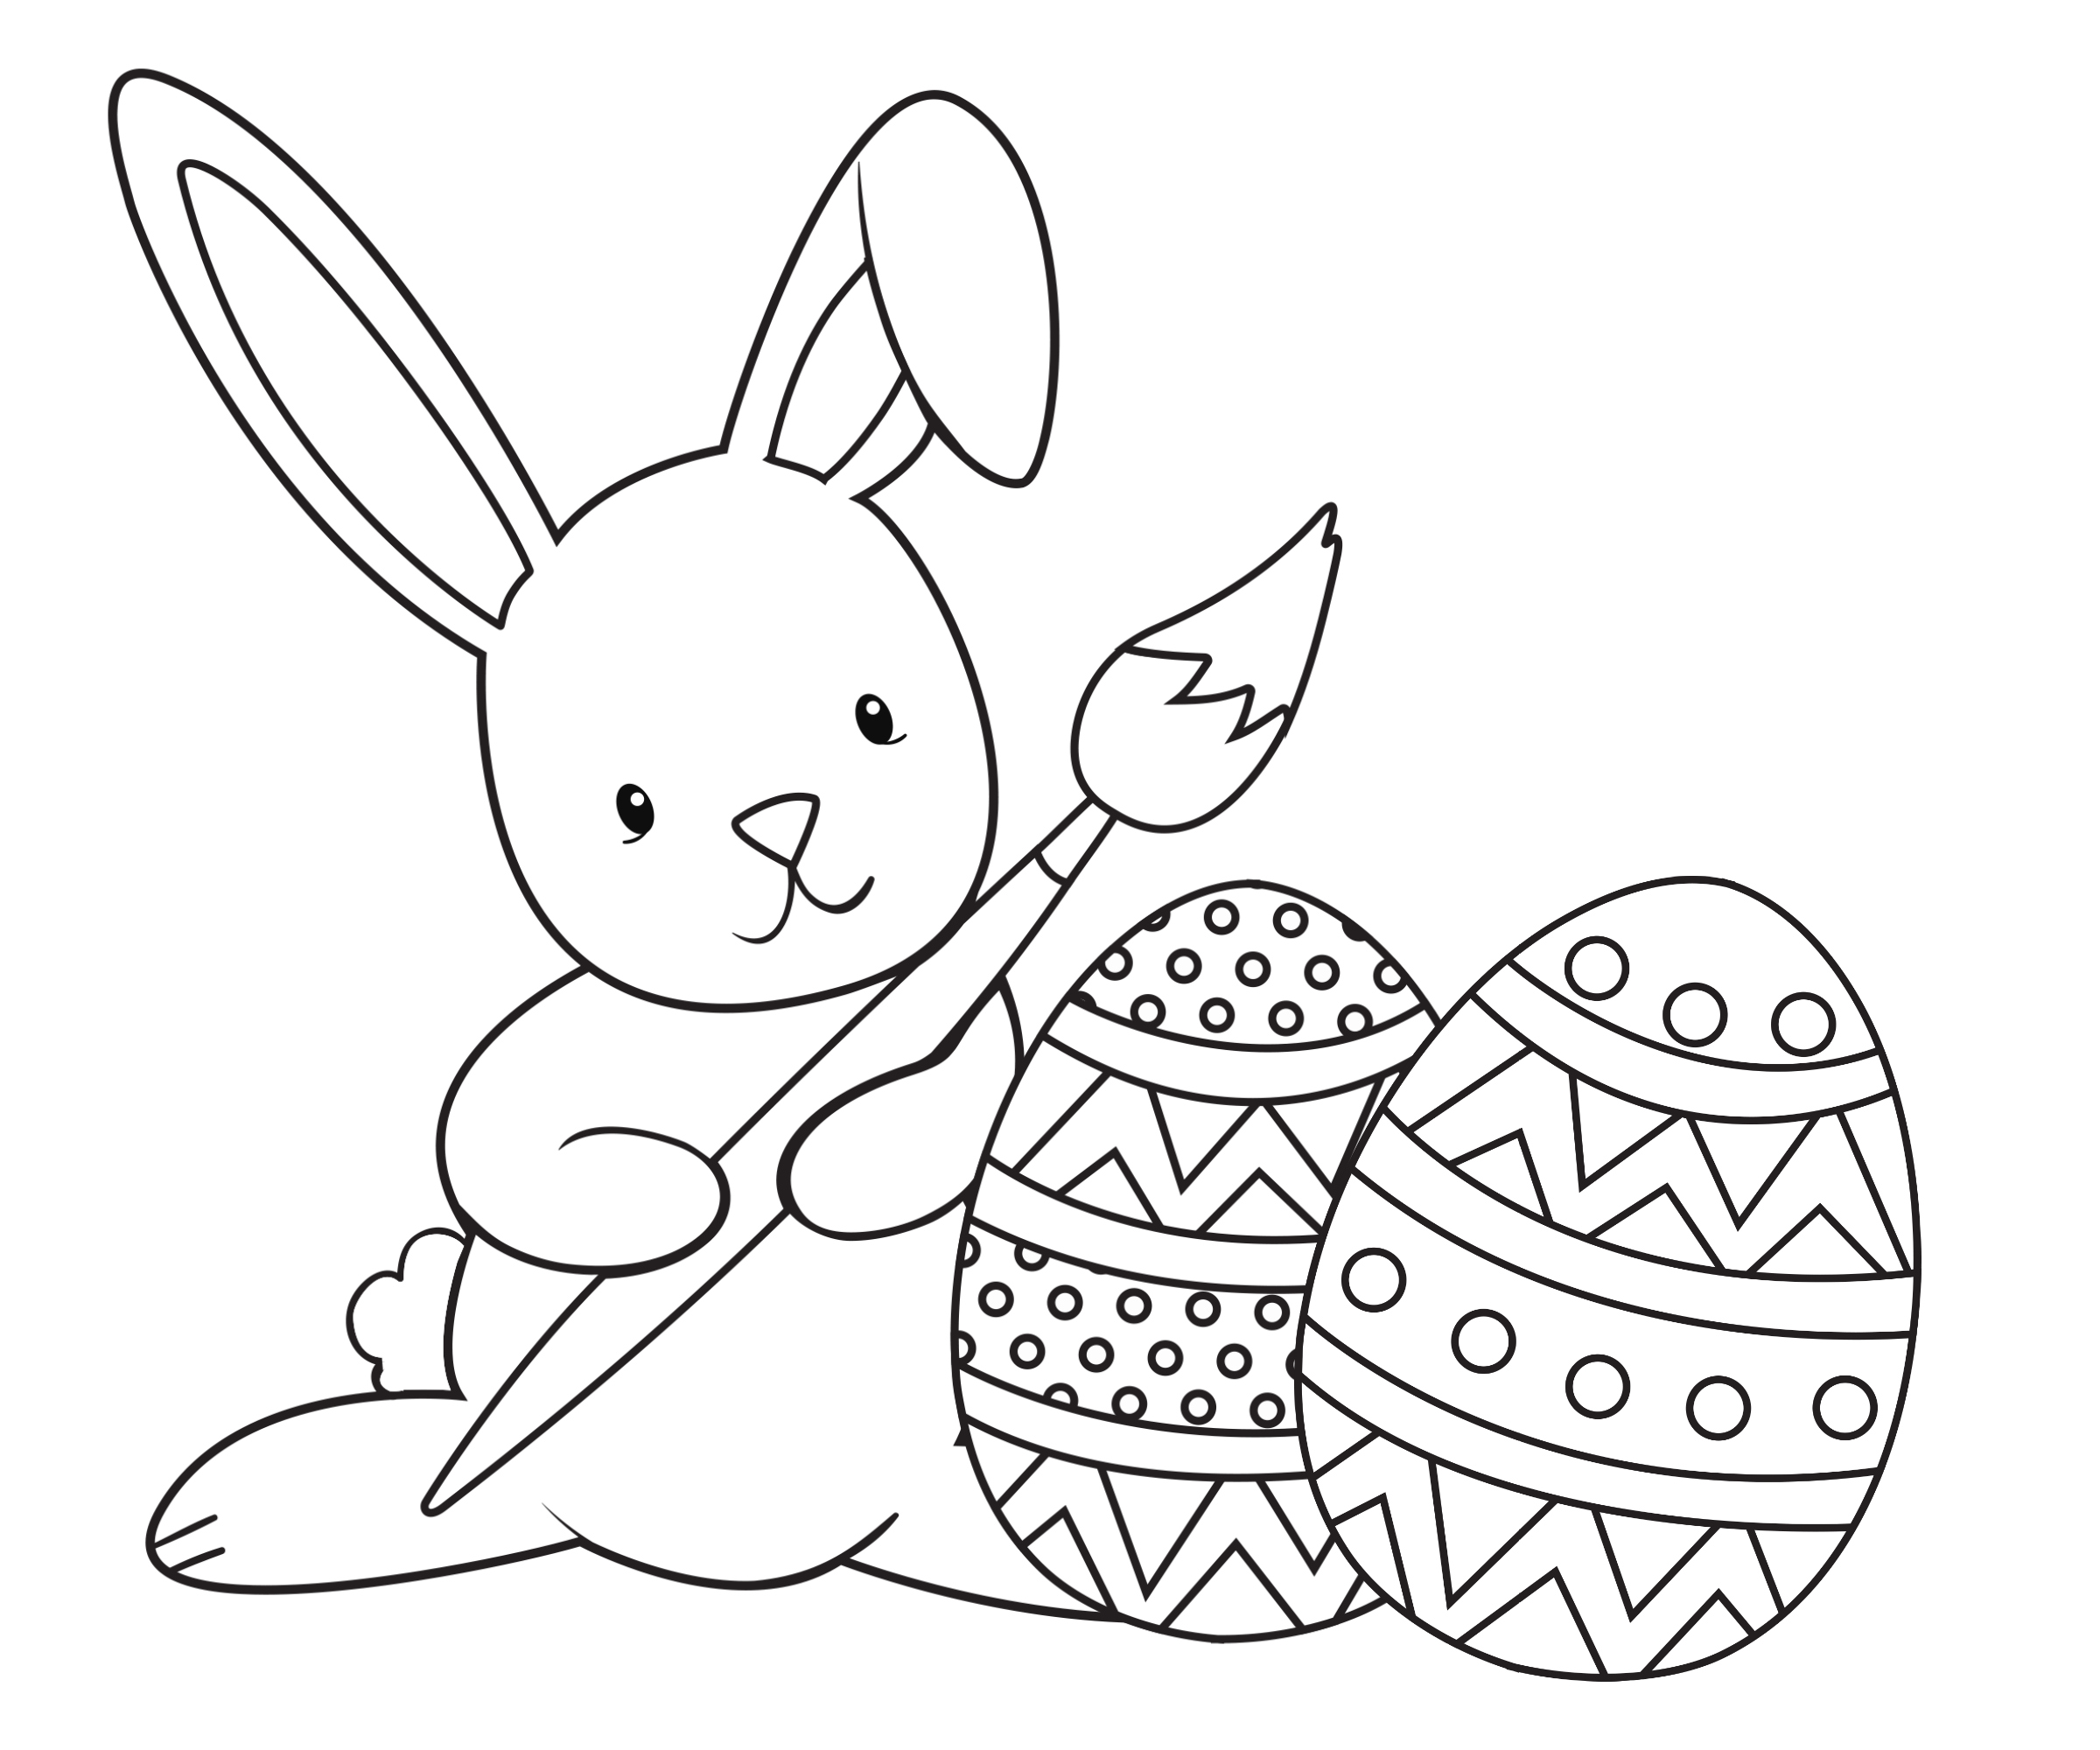 55 Cute Coloring Pages For 6 Year Olds Pictures